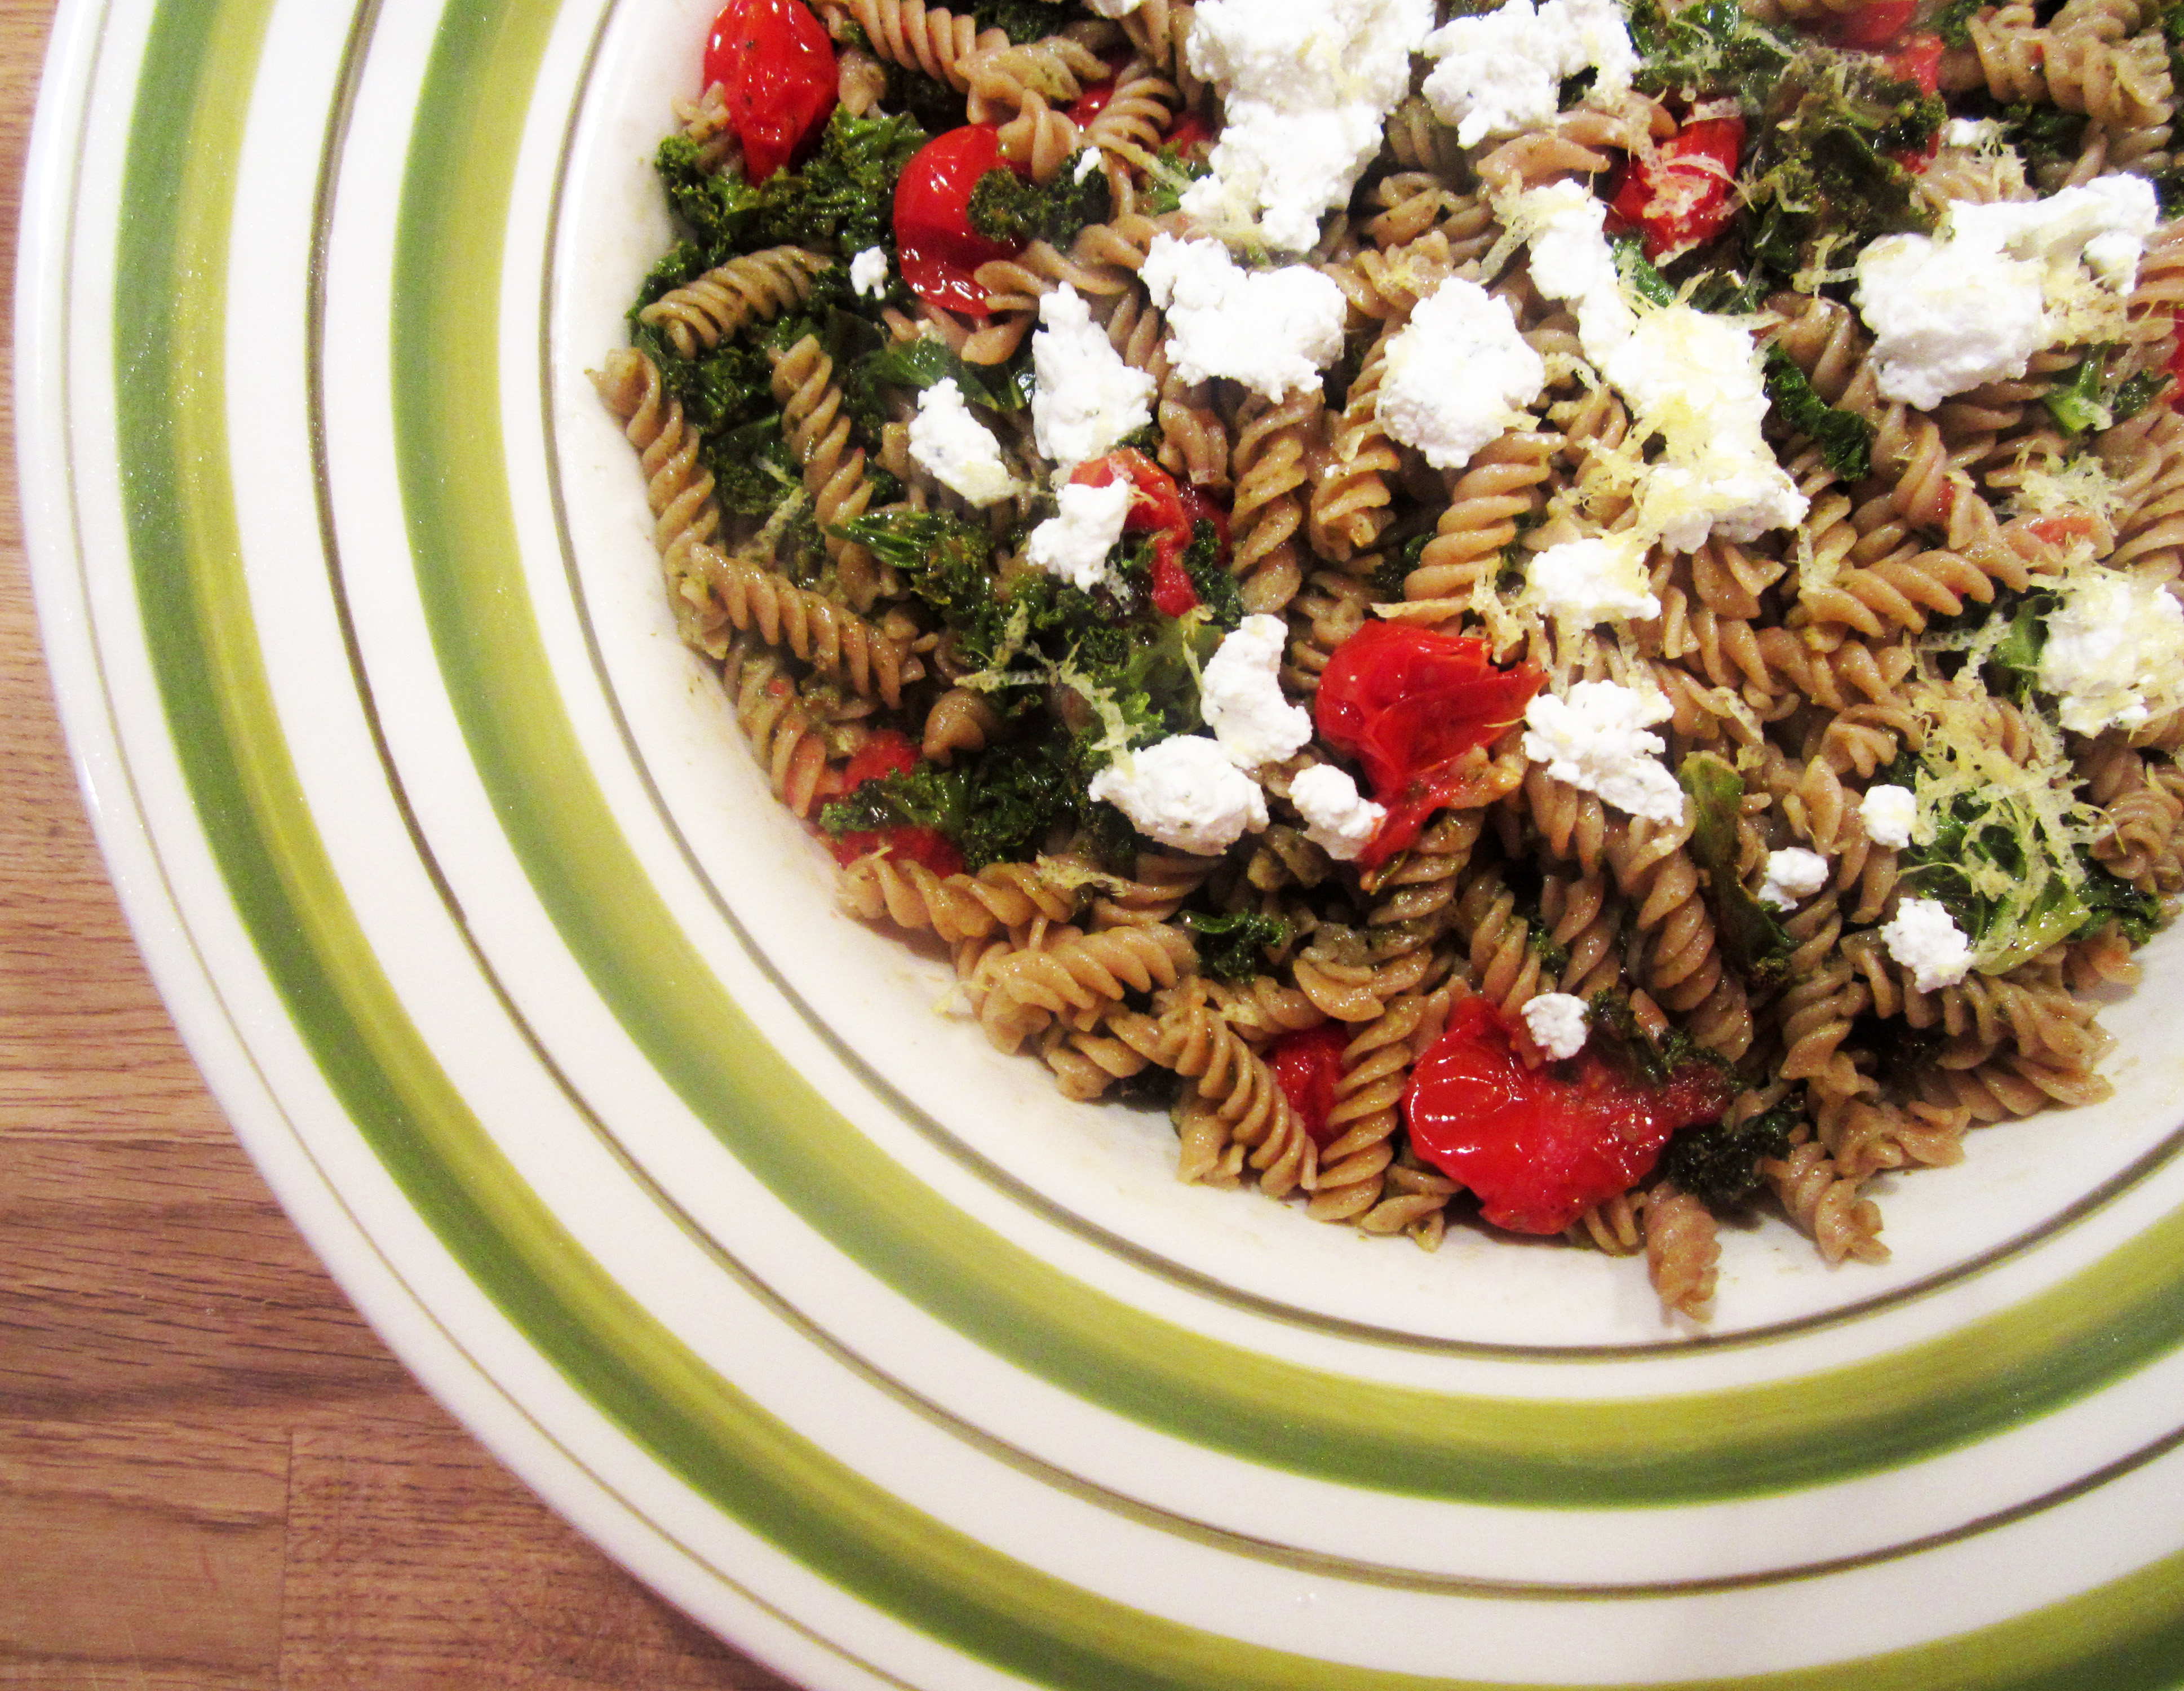 Fusili with Pesto, Goat Cheese, Roasted Tomatoes & Kale